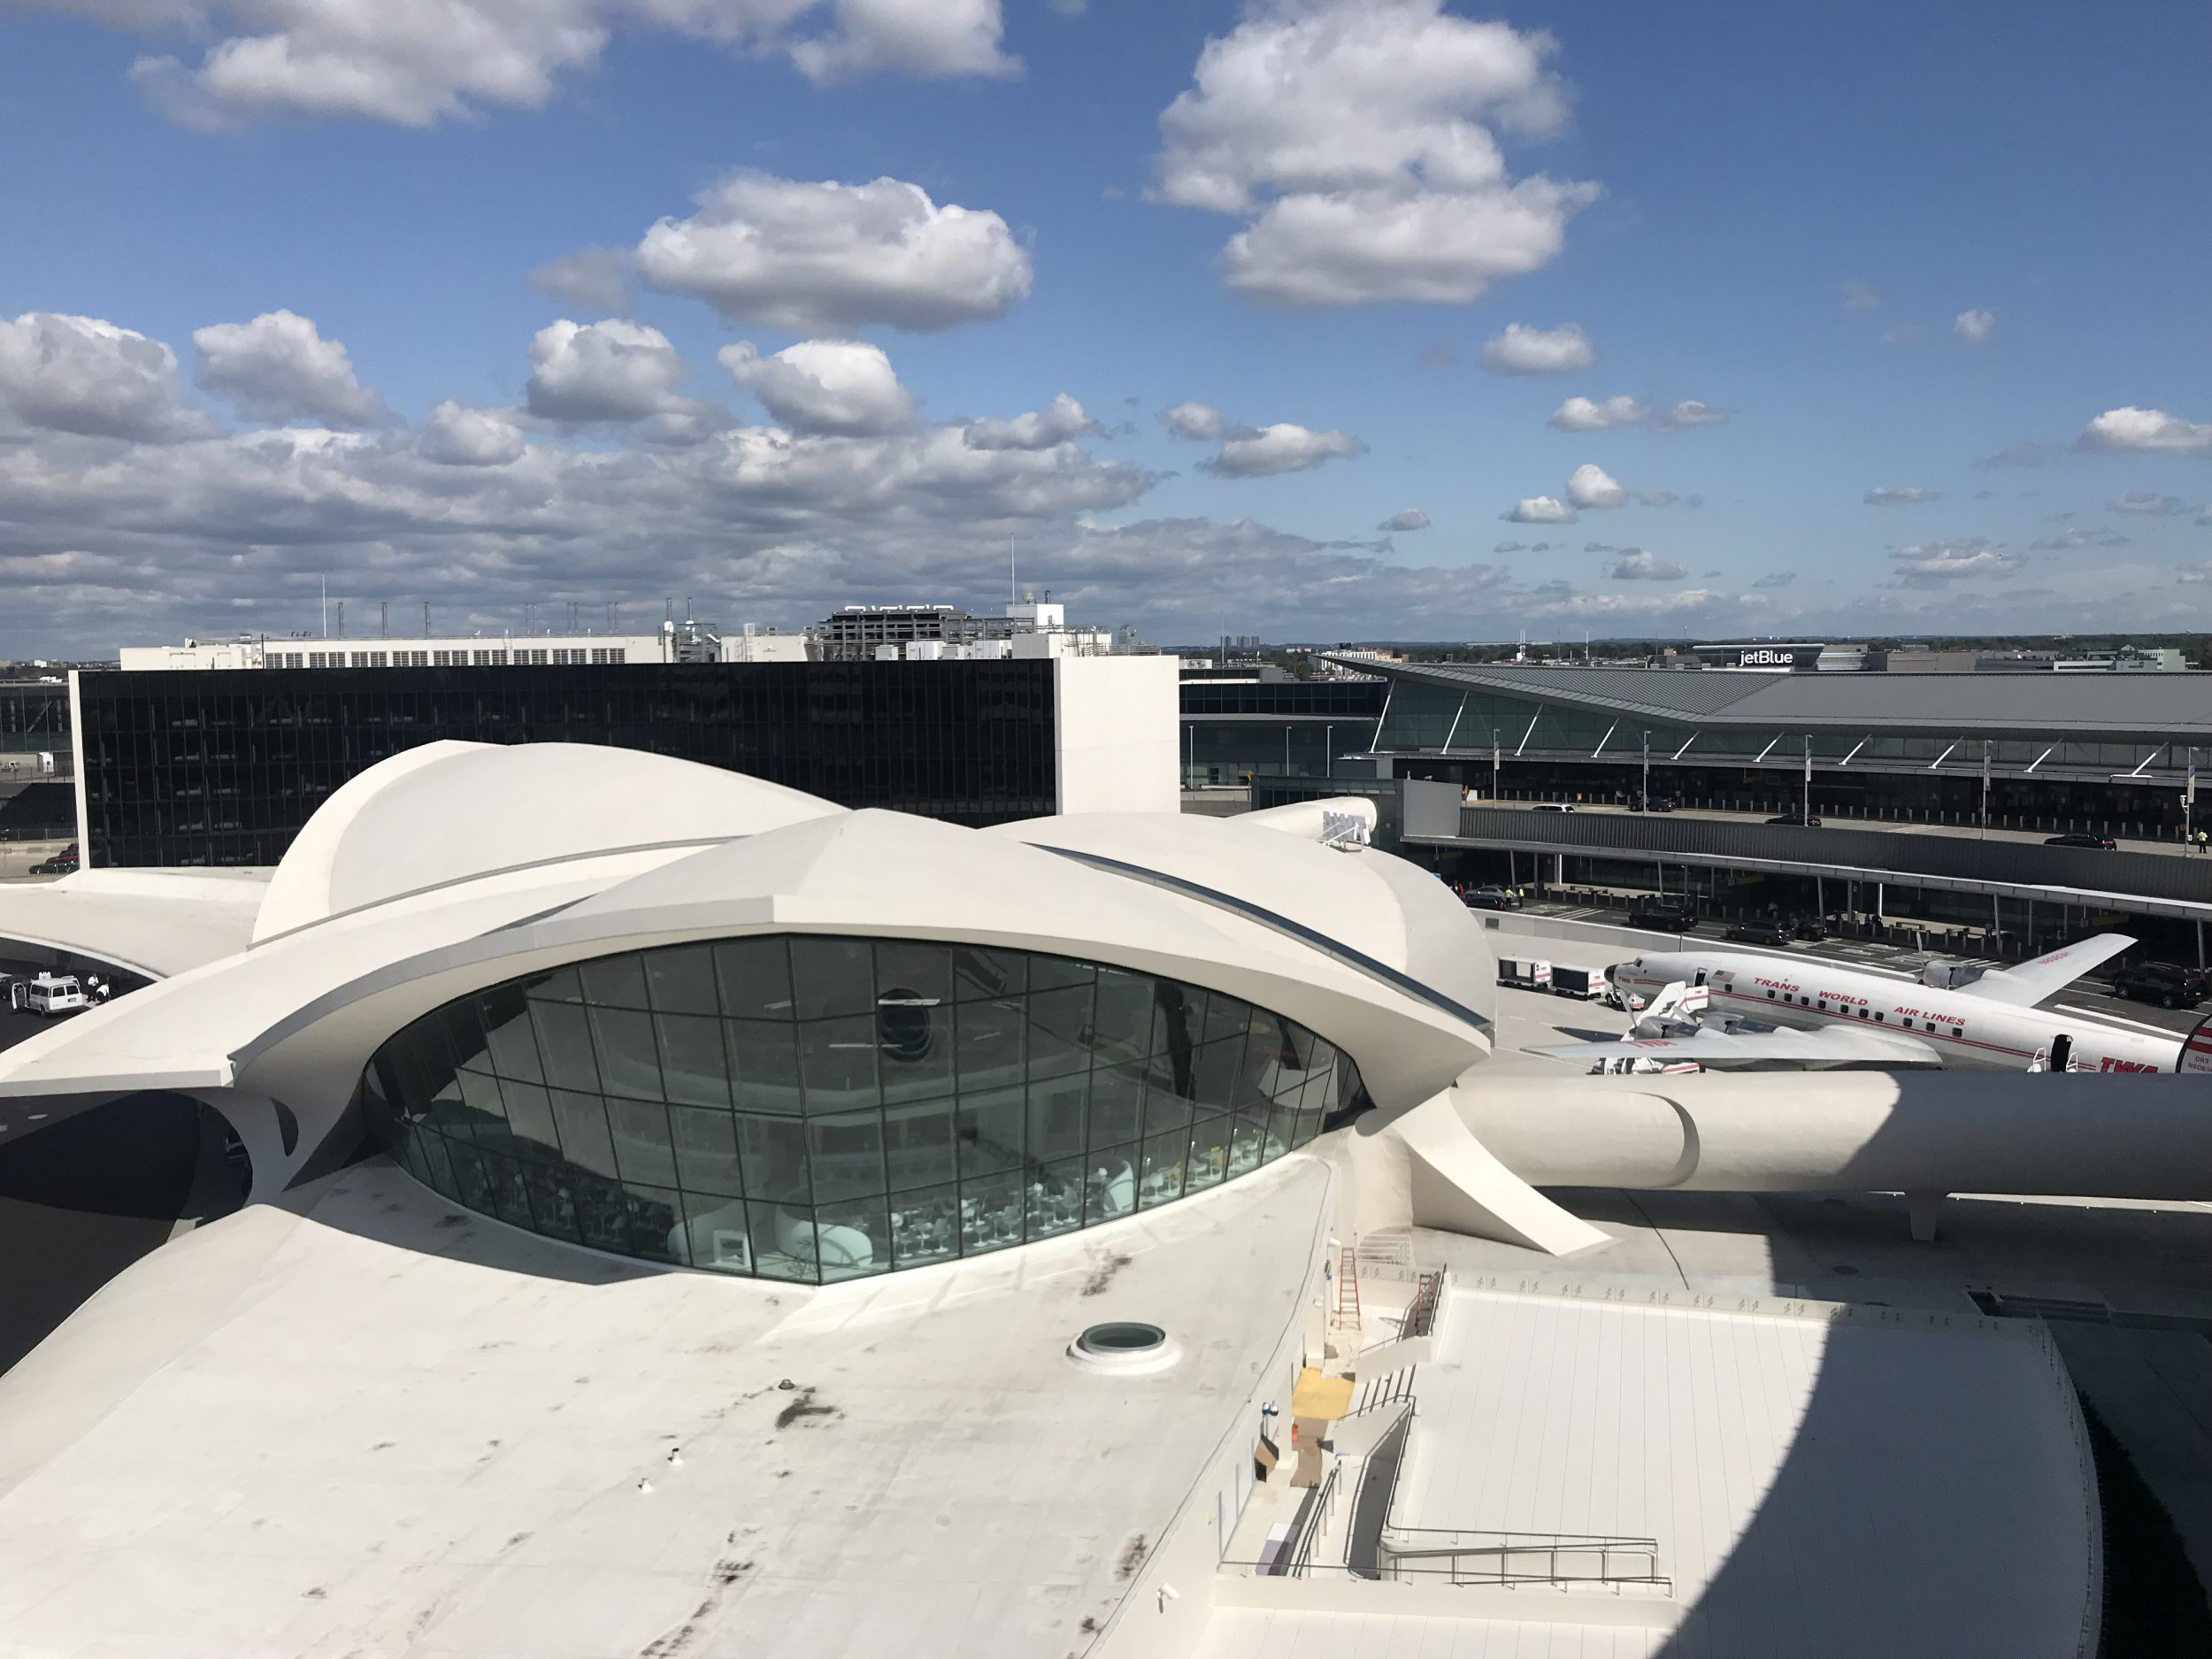 JFK Aiport TWA Hotel Above View